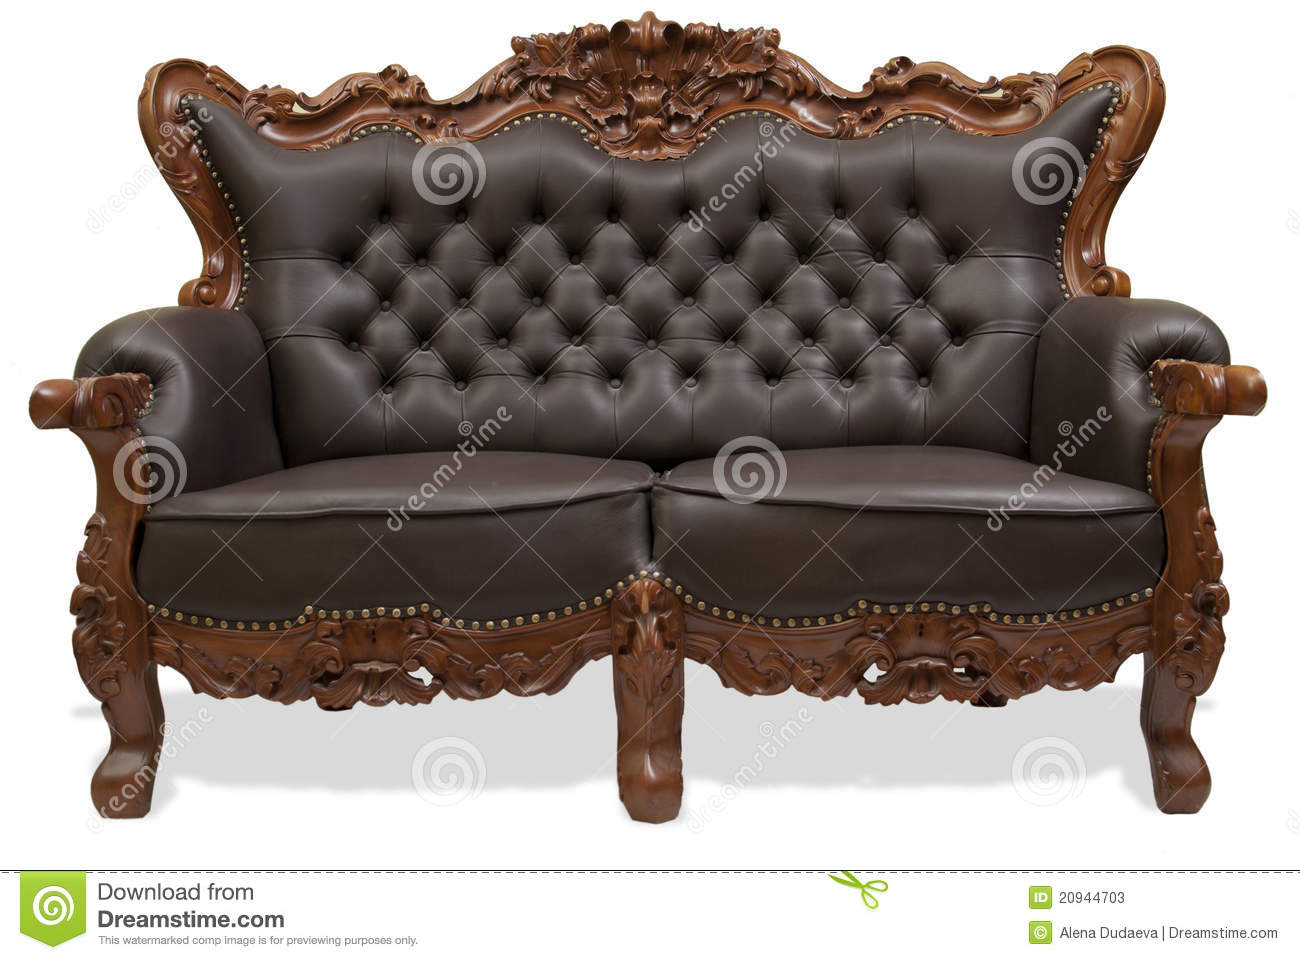 wooden carving sofa online india modular system couch garnitur lyon classical carved stock photos image 20944703